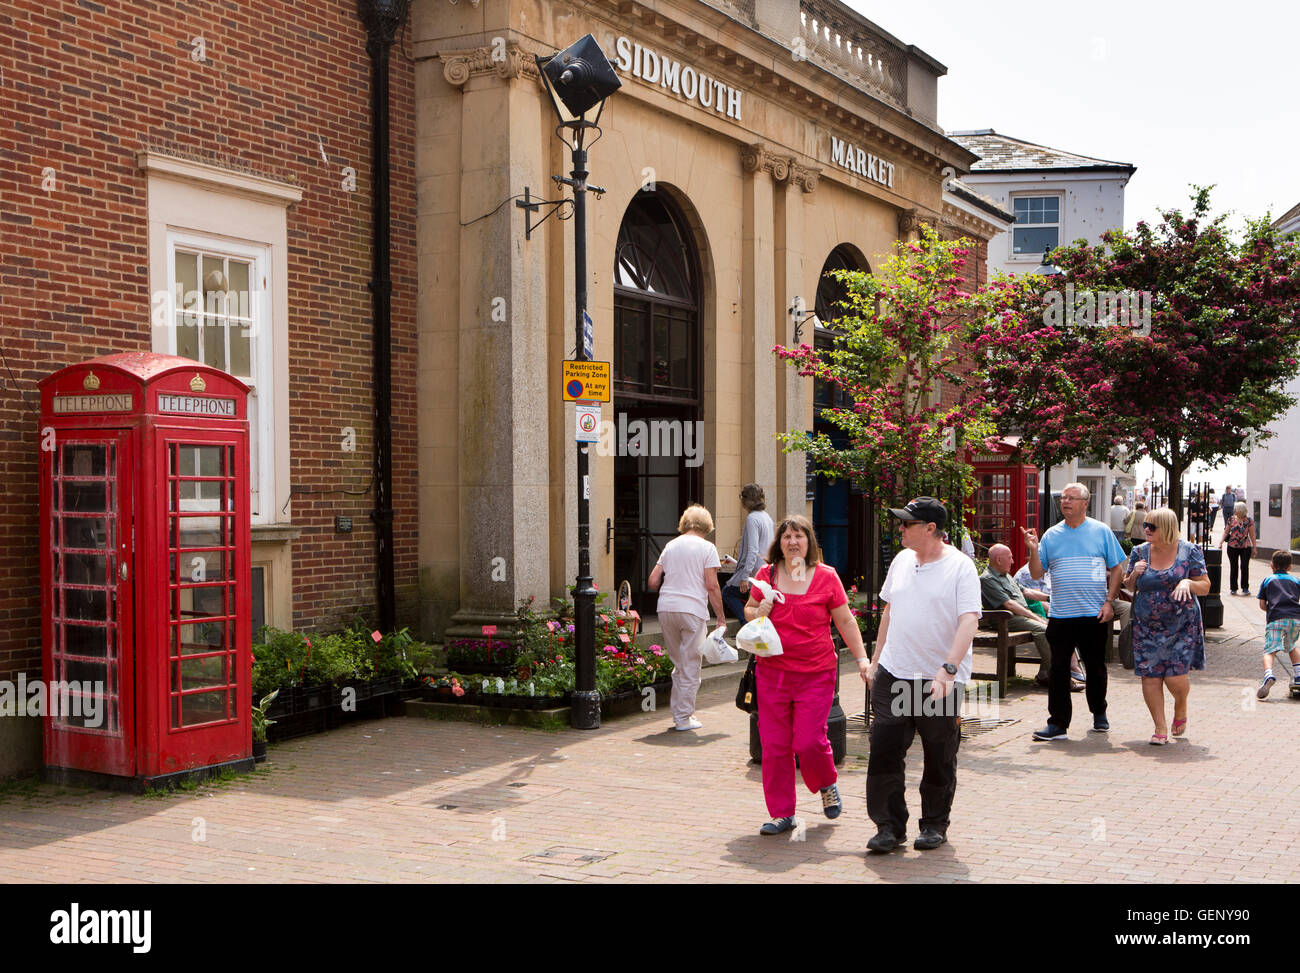 UK, England, Devon, Sidmouth, Old Fore Street, Market Square, Sidmouth Market building - Stock Image